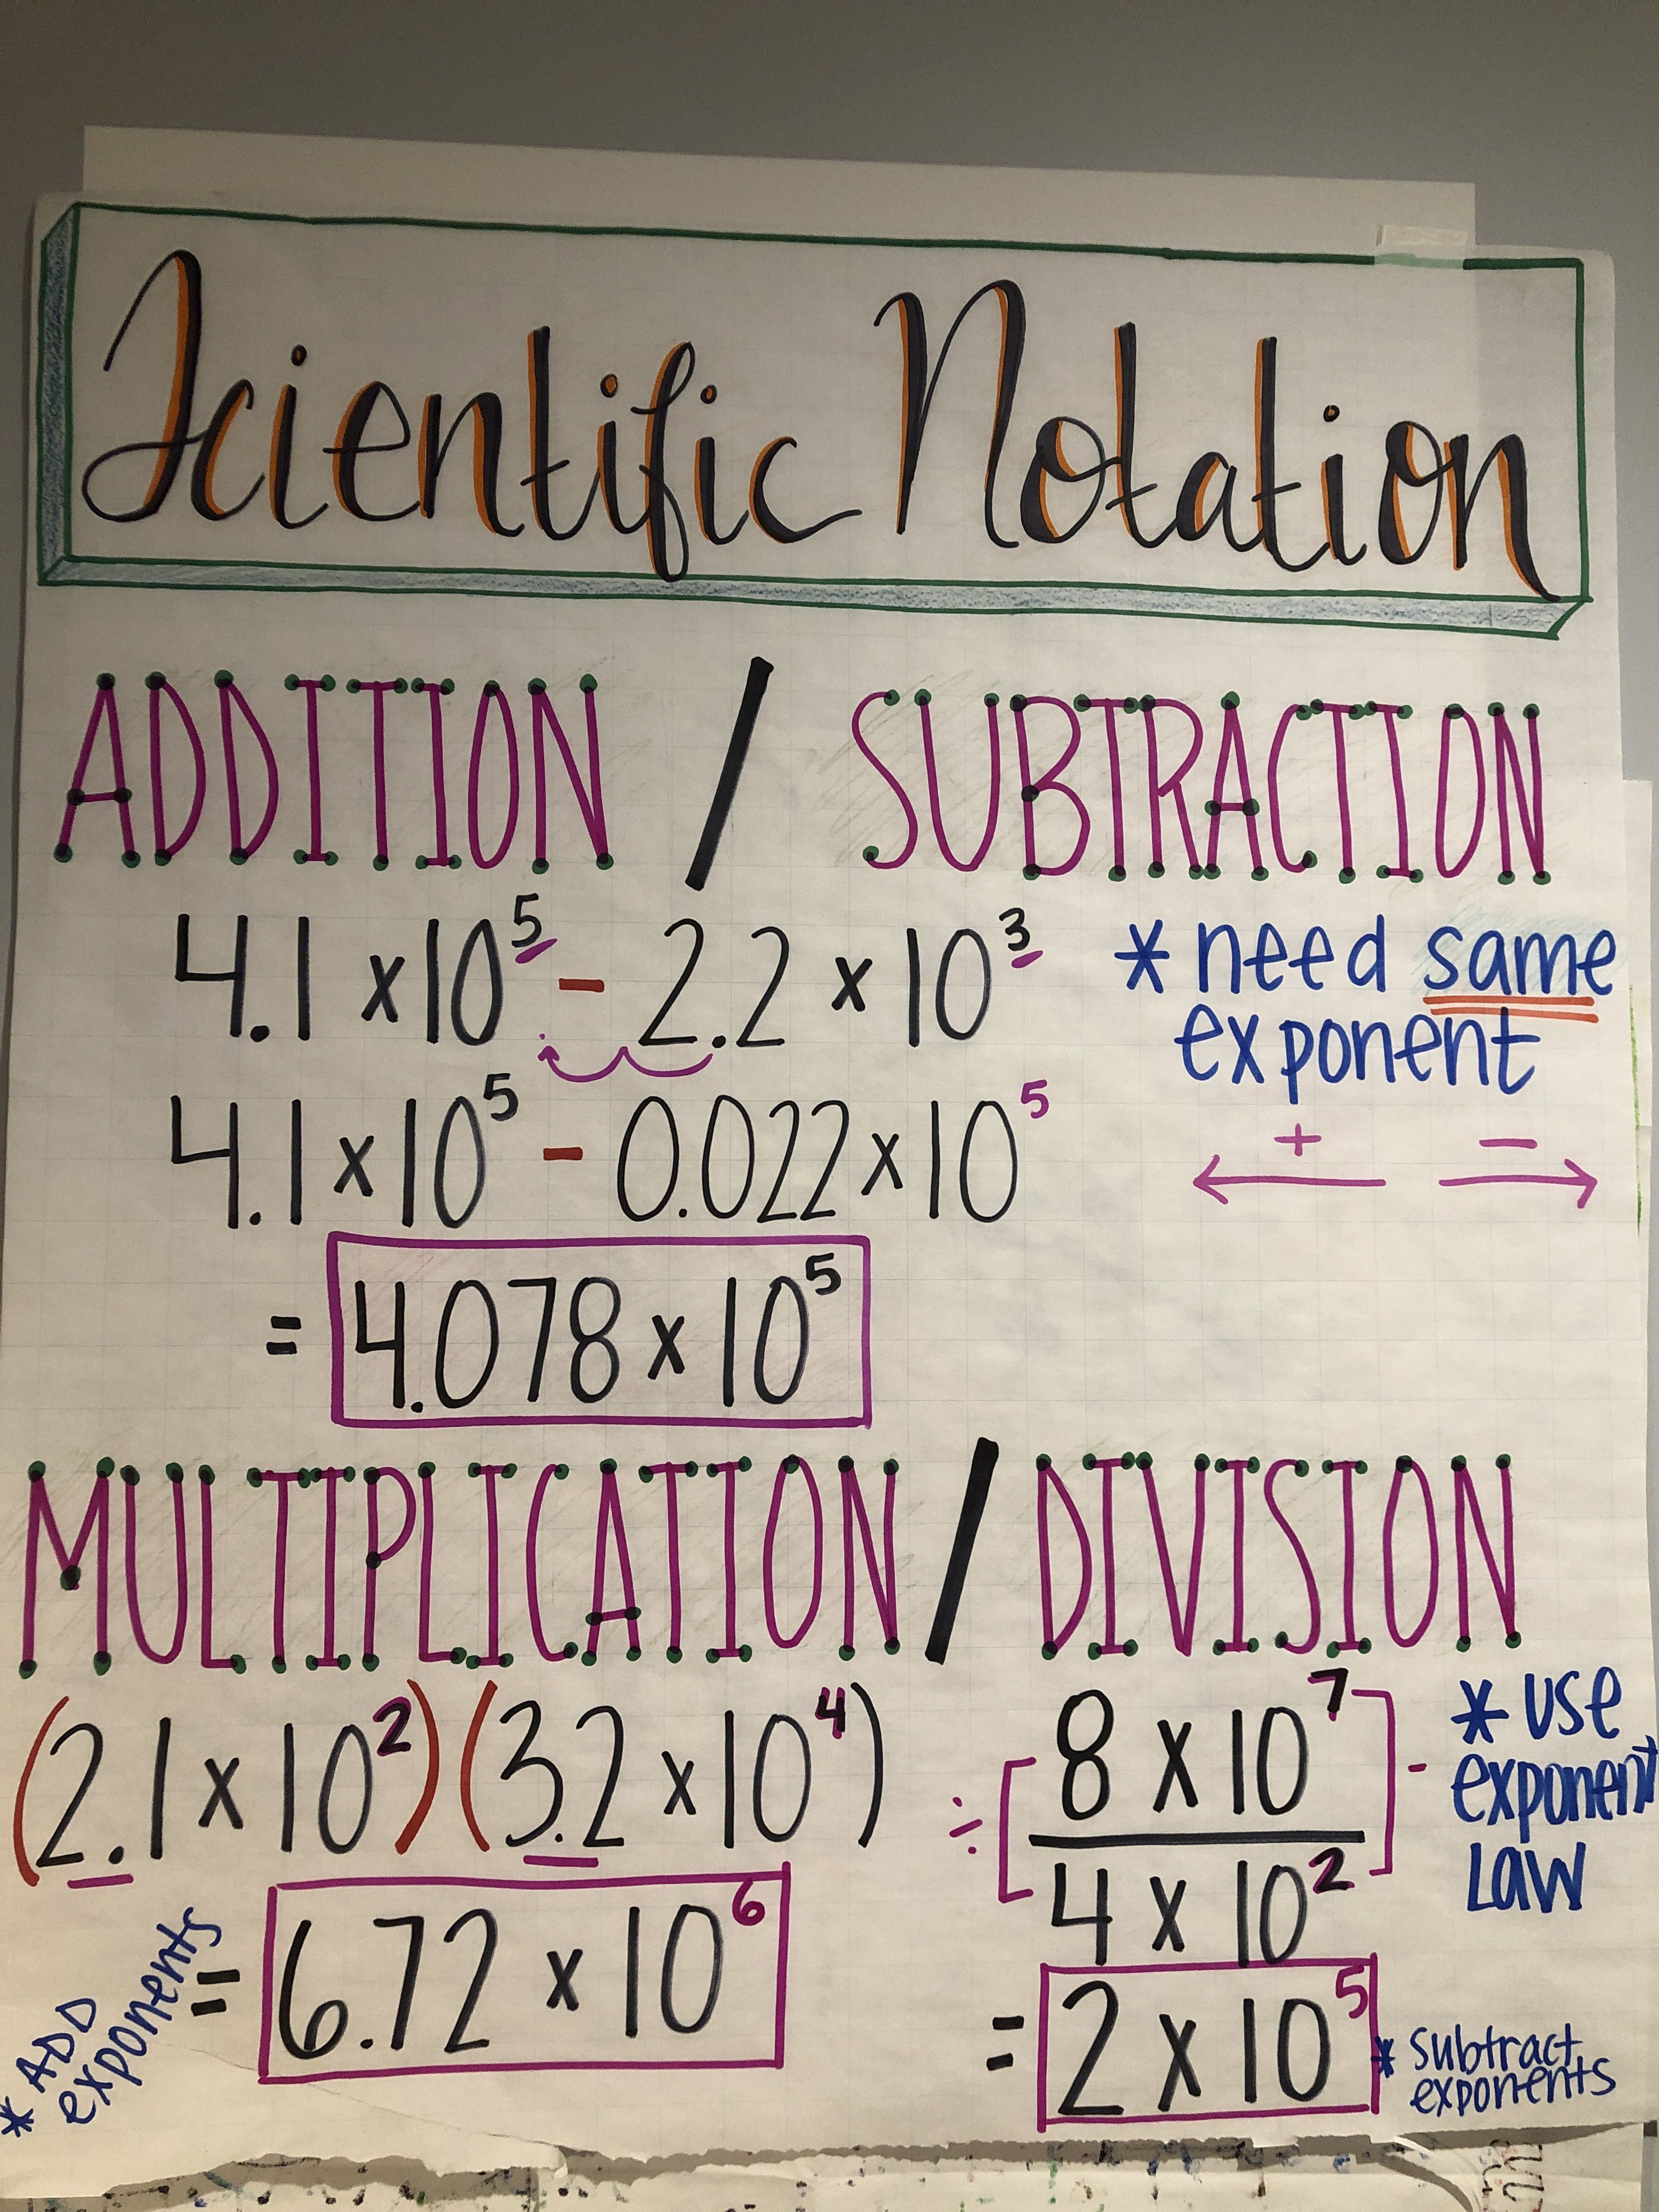 Scientific Notation Operations Anchor Chart Scientific Notation Notes Scientific Notation Anchor Chart Scientific Notation Operations [ 4032 x 3024 Pixel ]